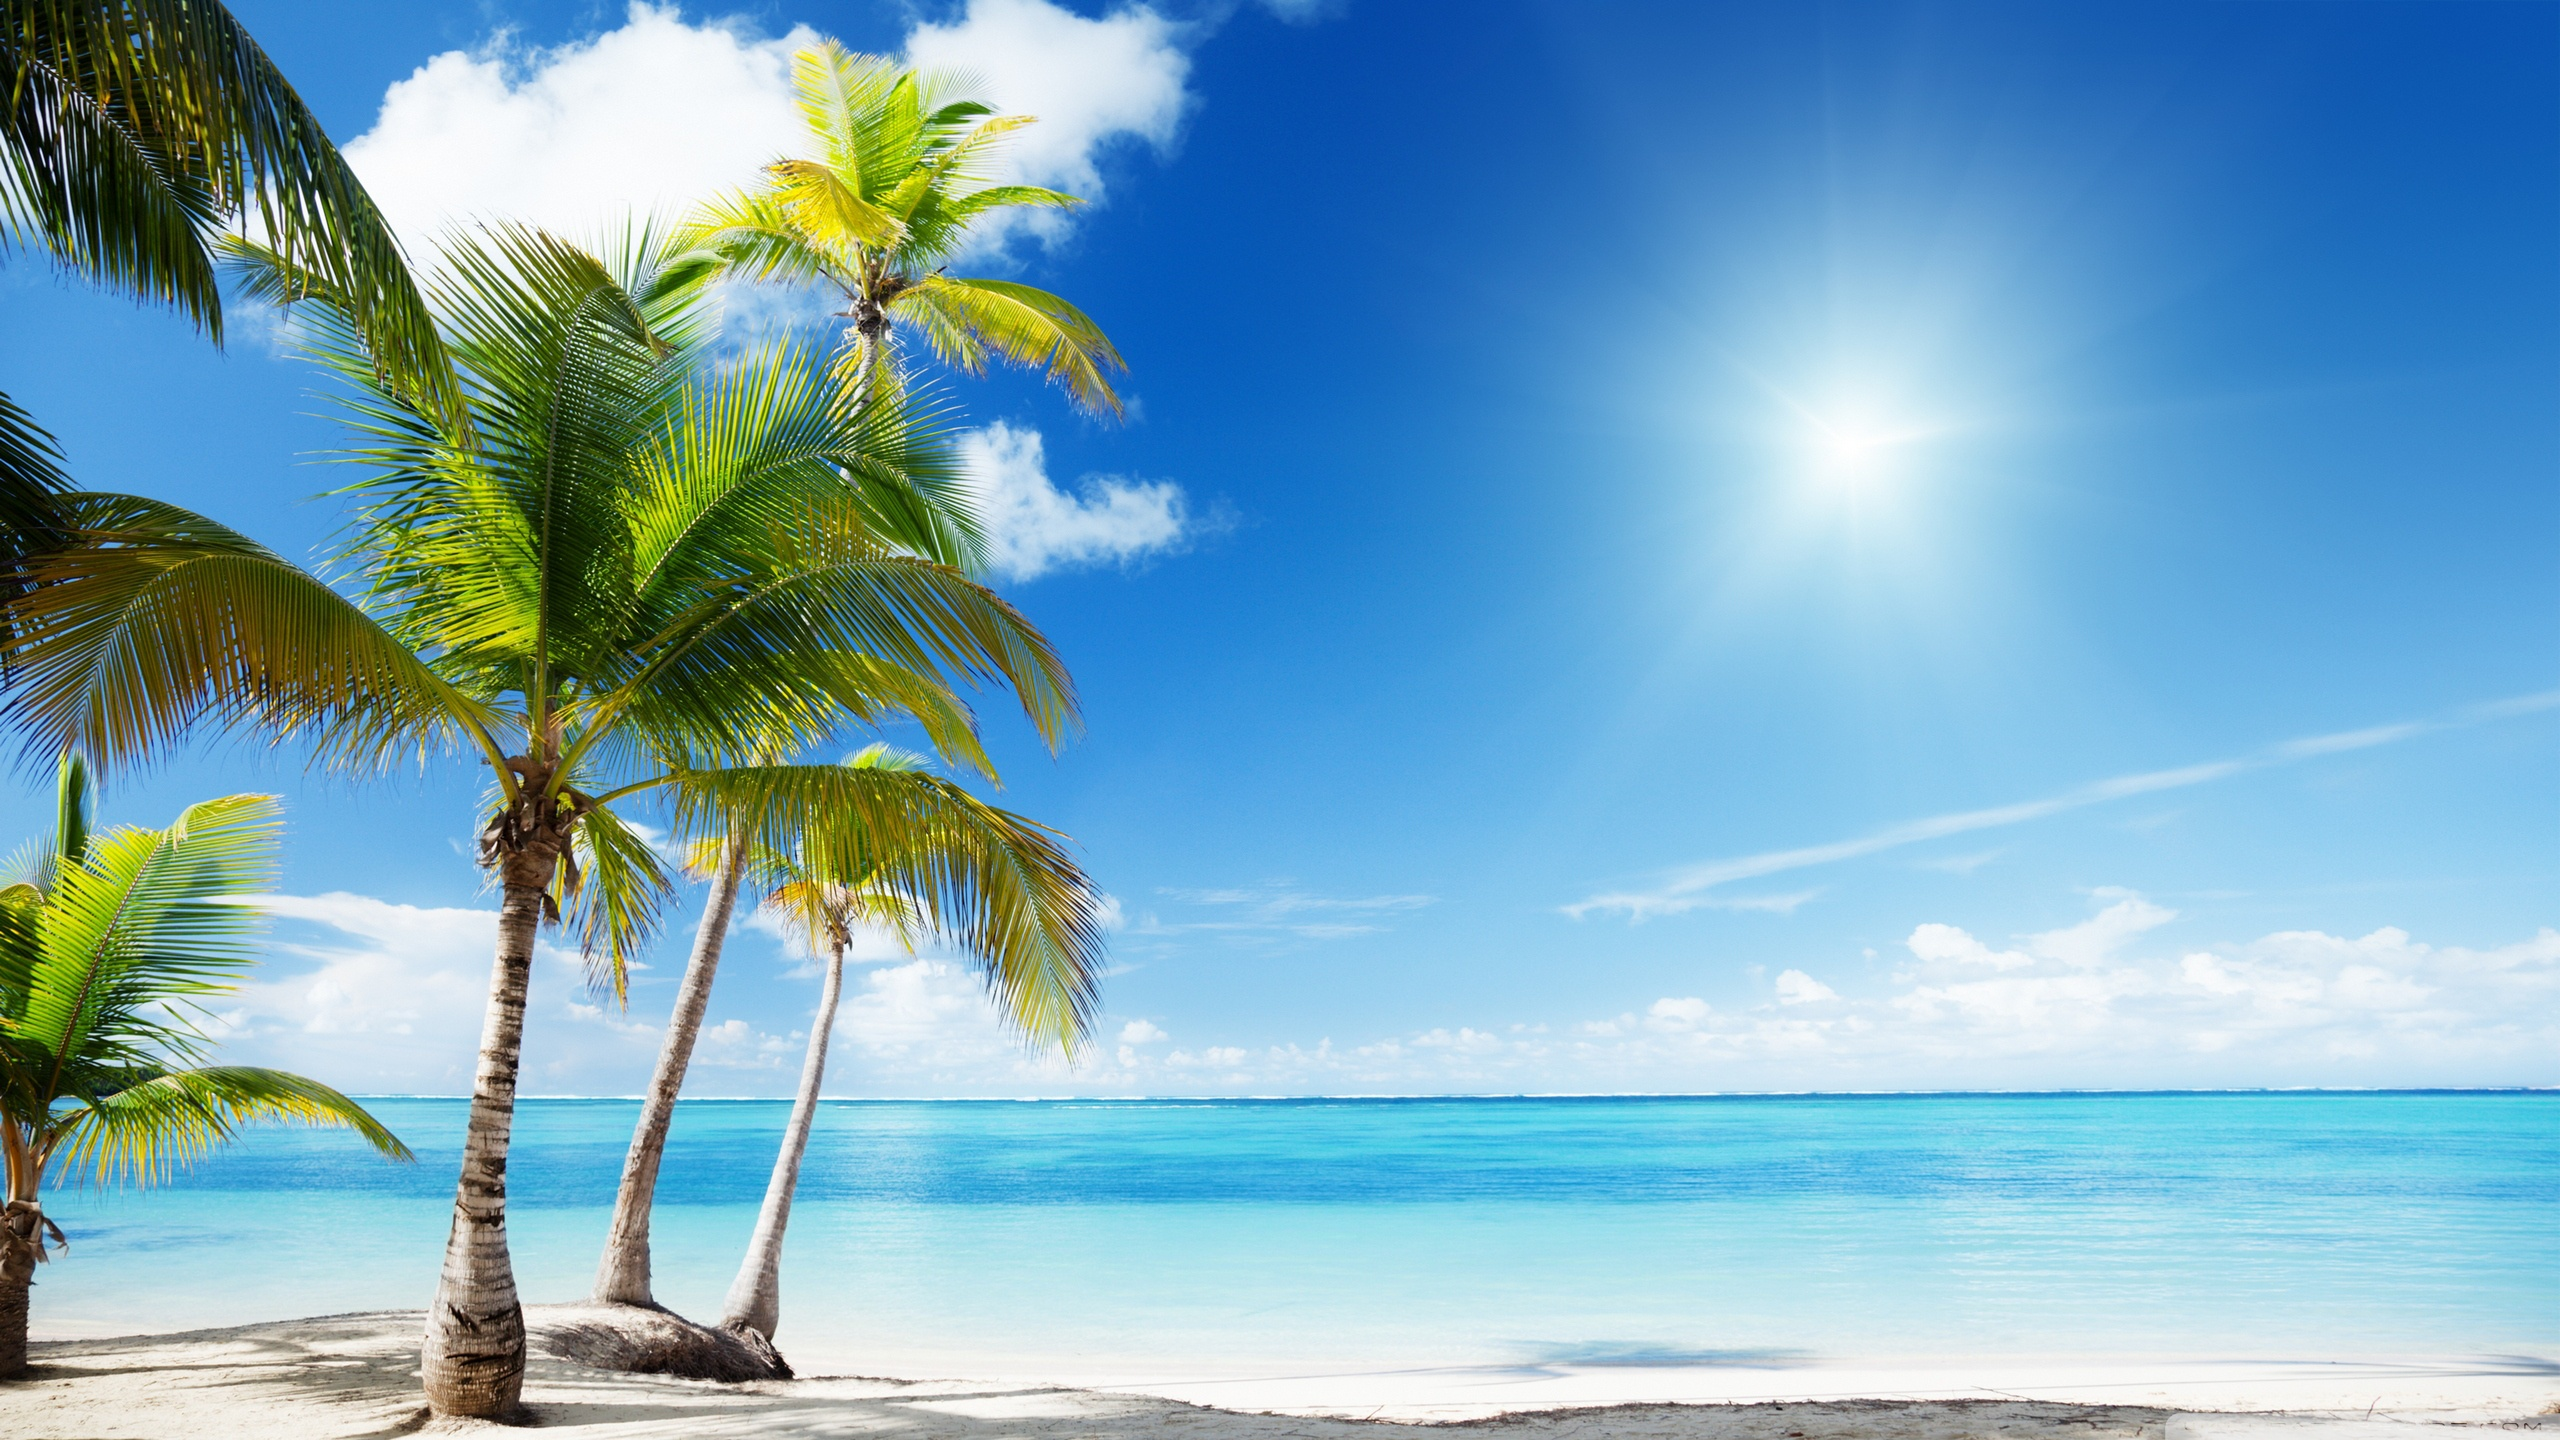 Free Download 2560x1440 Tropical Beach Desktop Pc And Mac Wallpaper 2560x1440 For Your Desktop Mobile Tablet Explore 65 Tropical Beach Desktop Backgrounds Beach Tropical Wallpaper Tropical Free Wallpaper